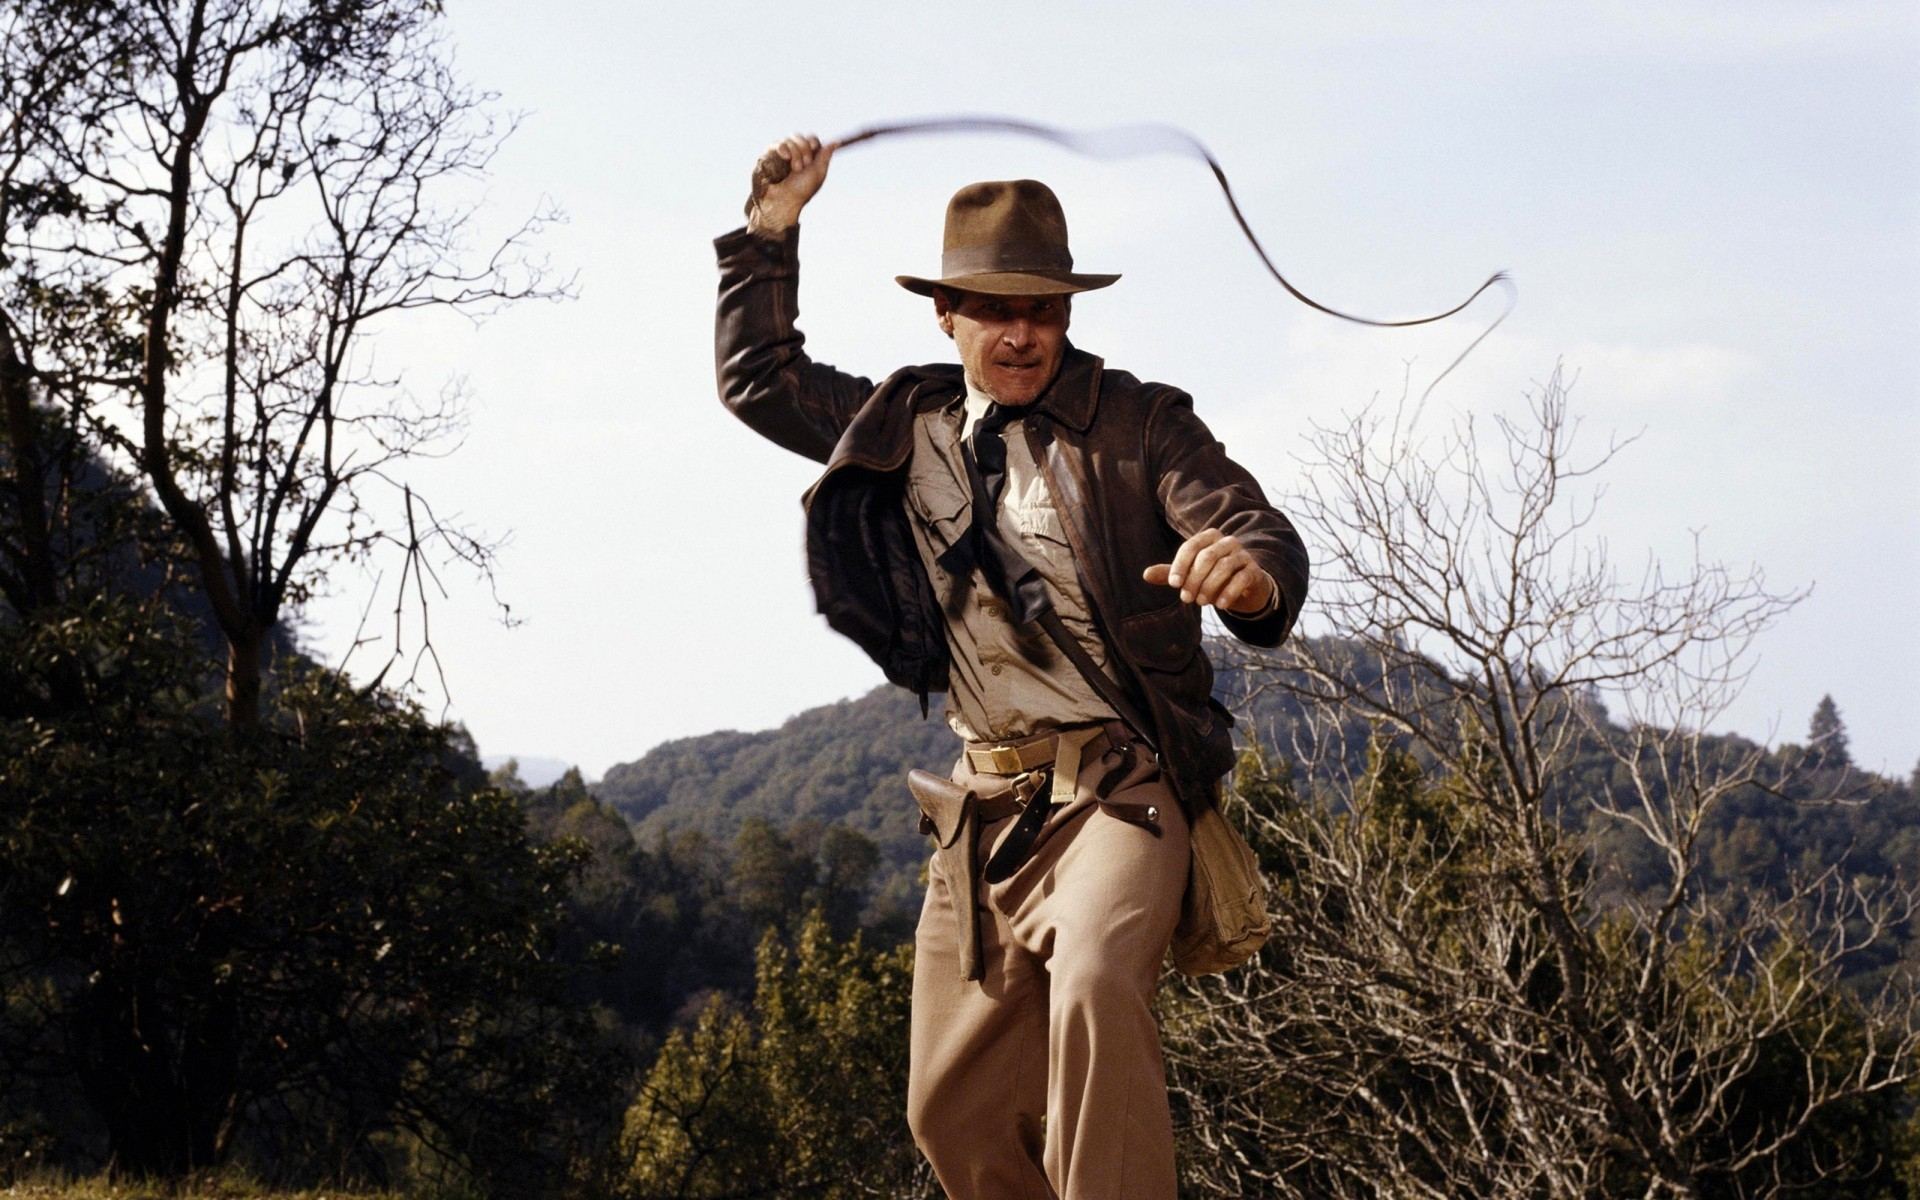 harrison ford as indiana jones. android wallpapers for free.